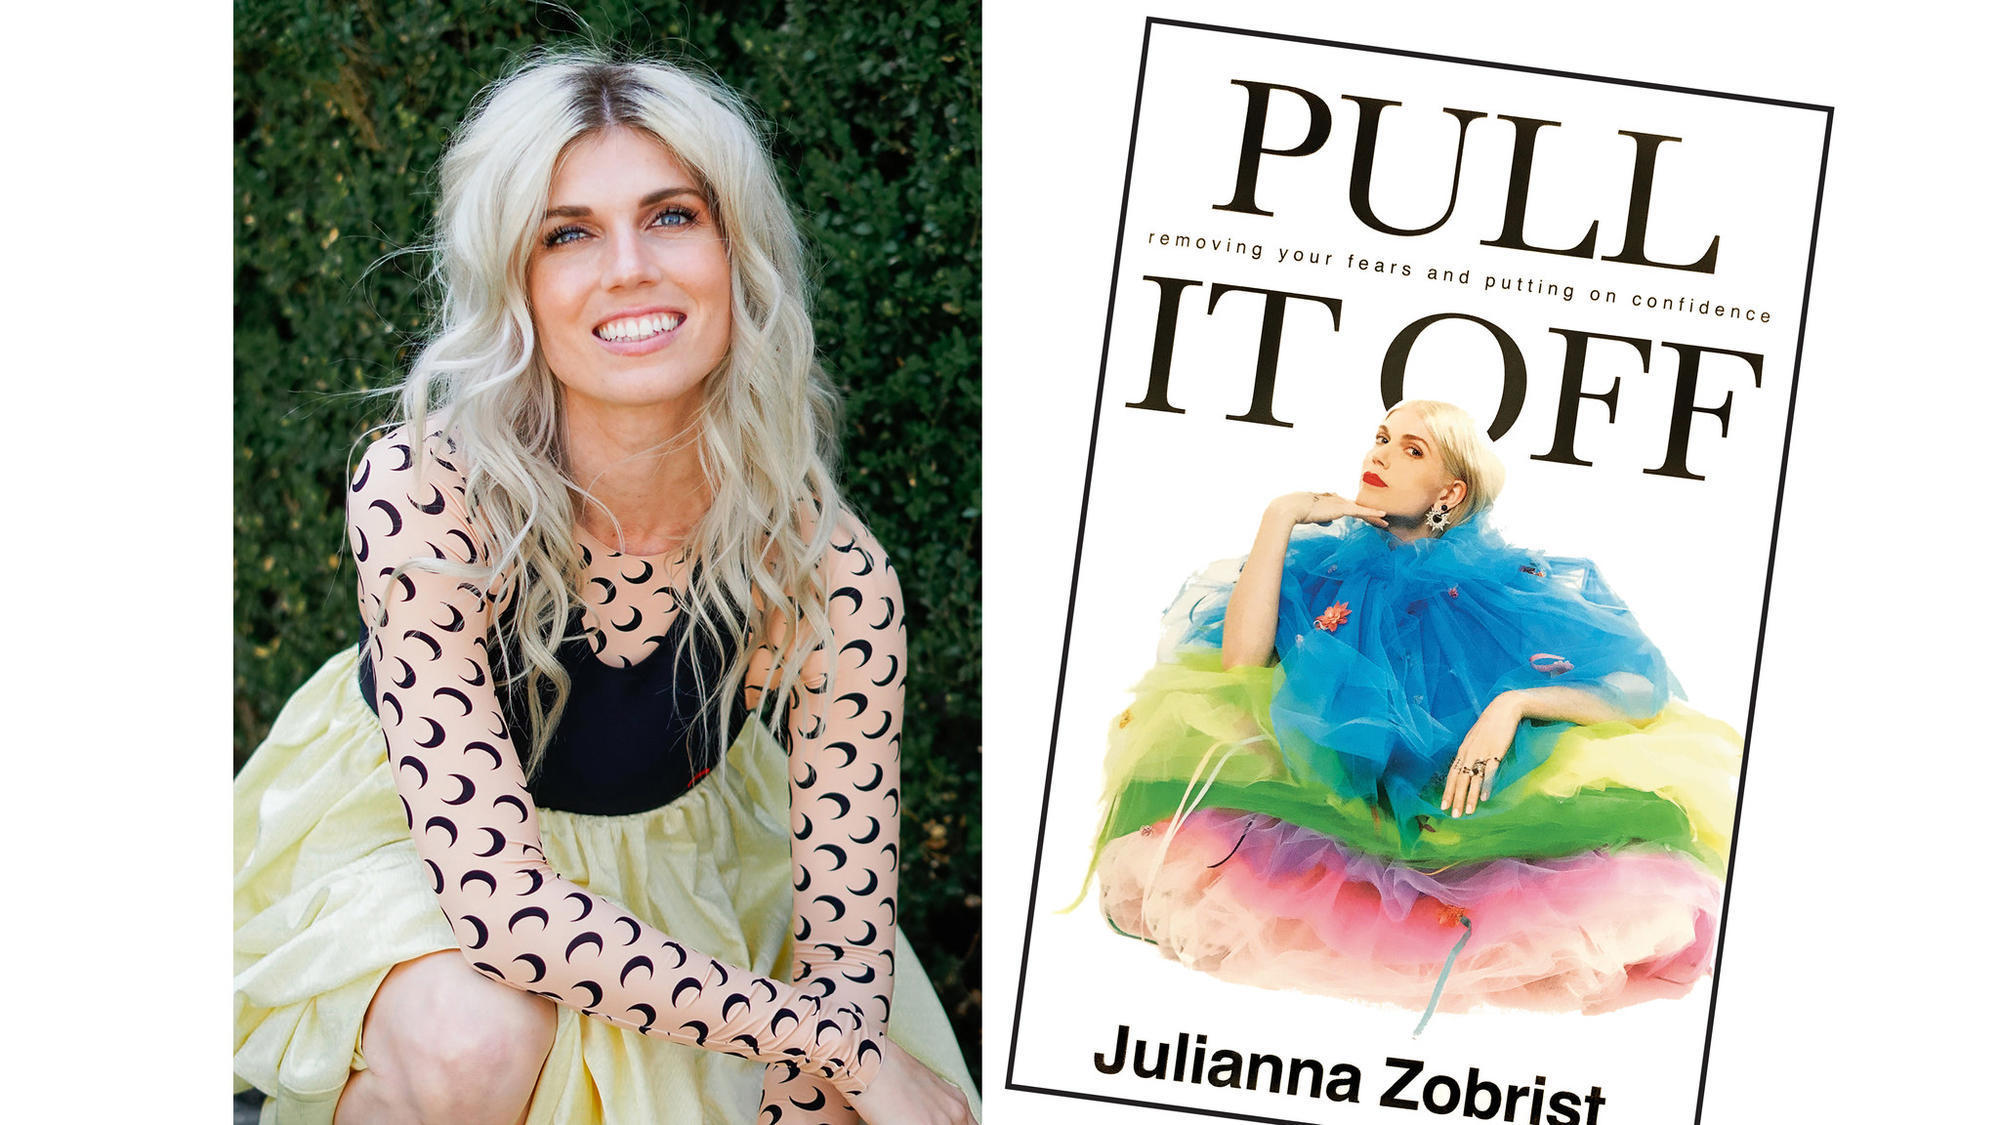 Julianna Zobrist talks about fears fashion and life with Ben  Chicago Tribune